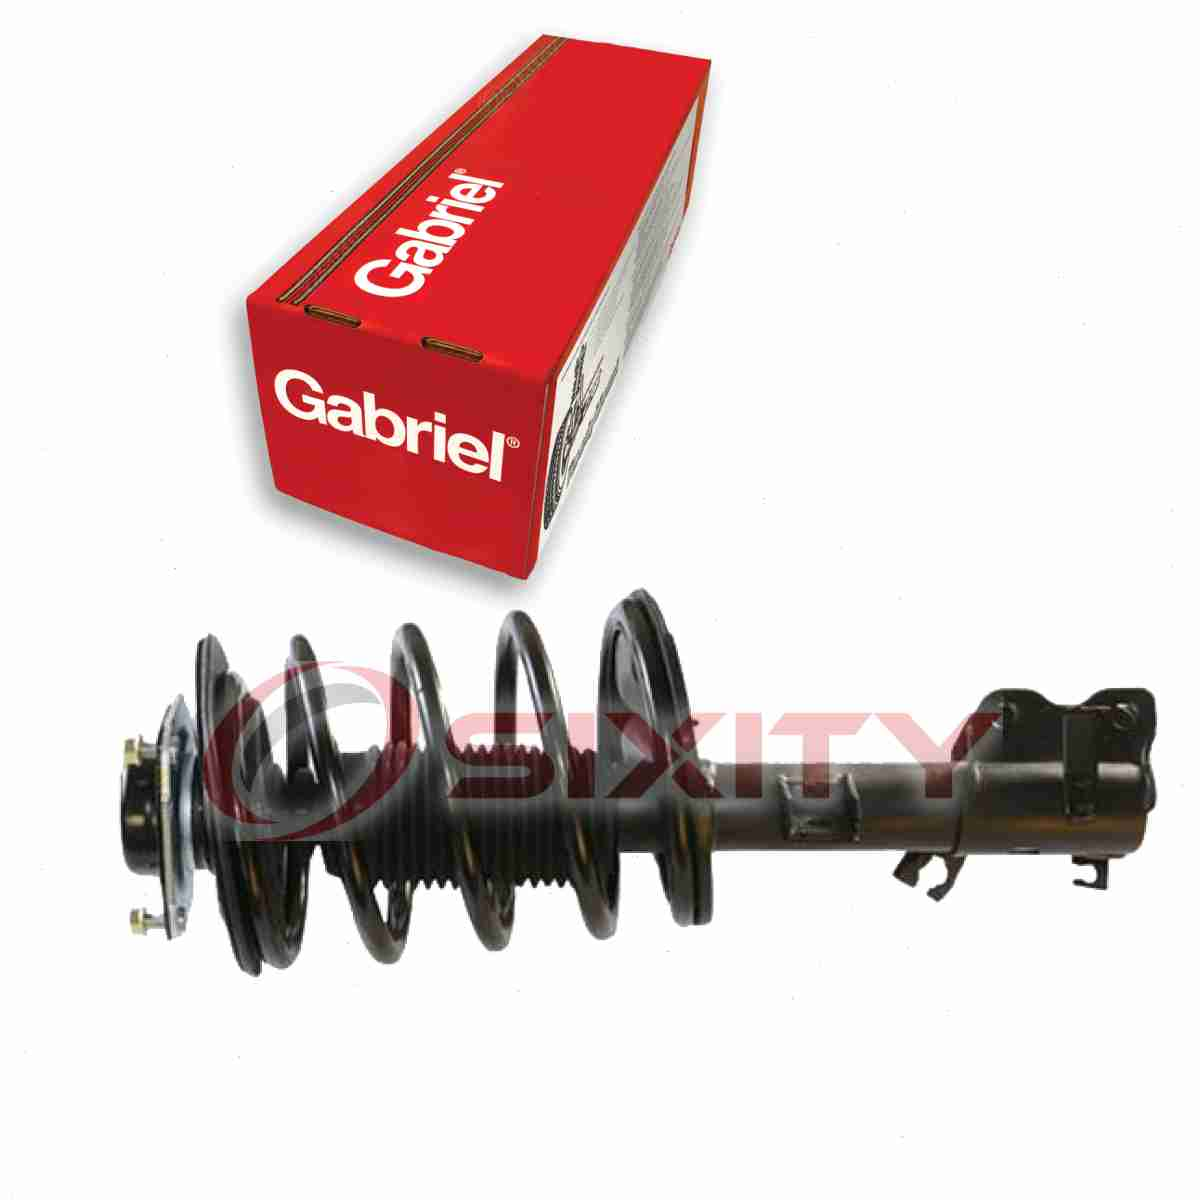 Gabriel Front Right Strut: Gabriel Front Right Fully Loaded Strut For 2002-2006